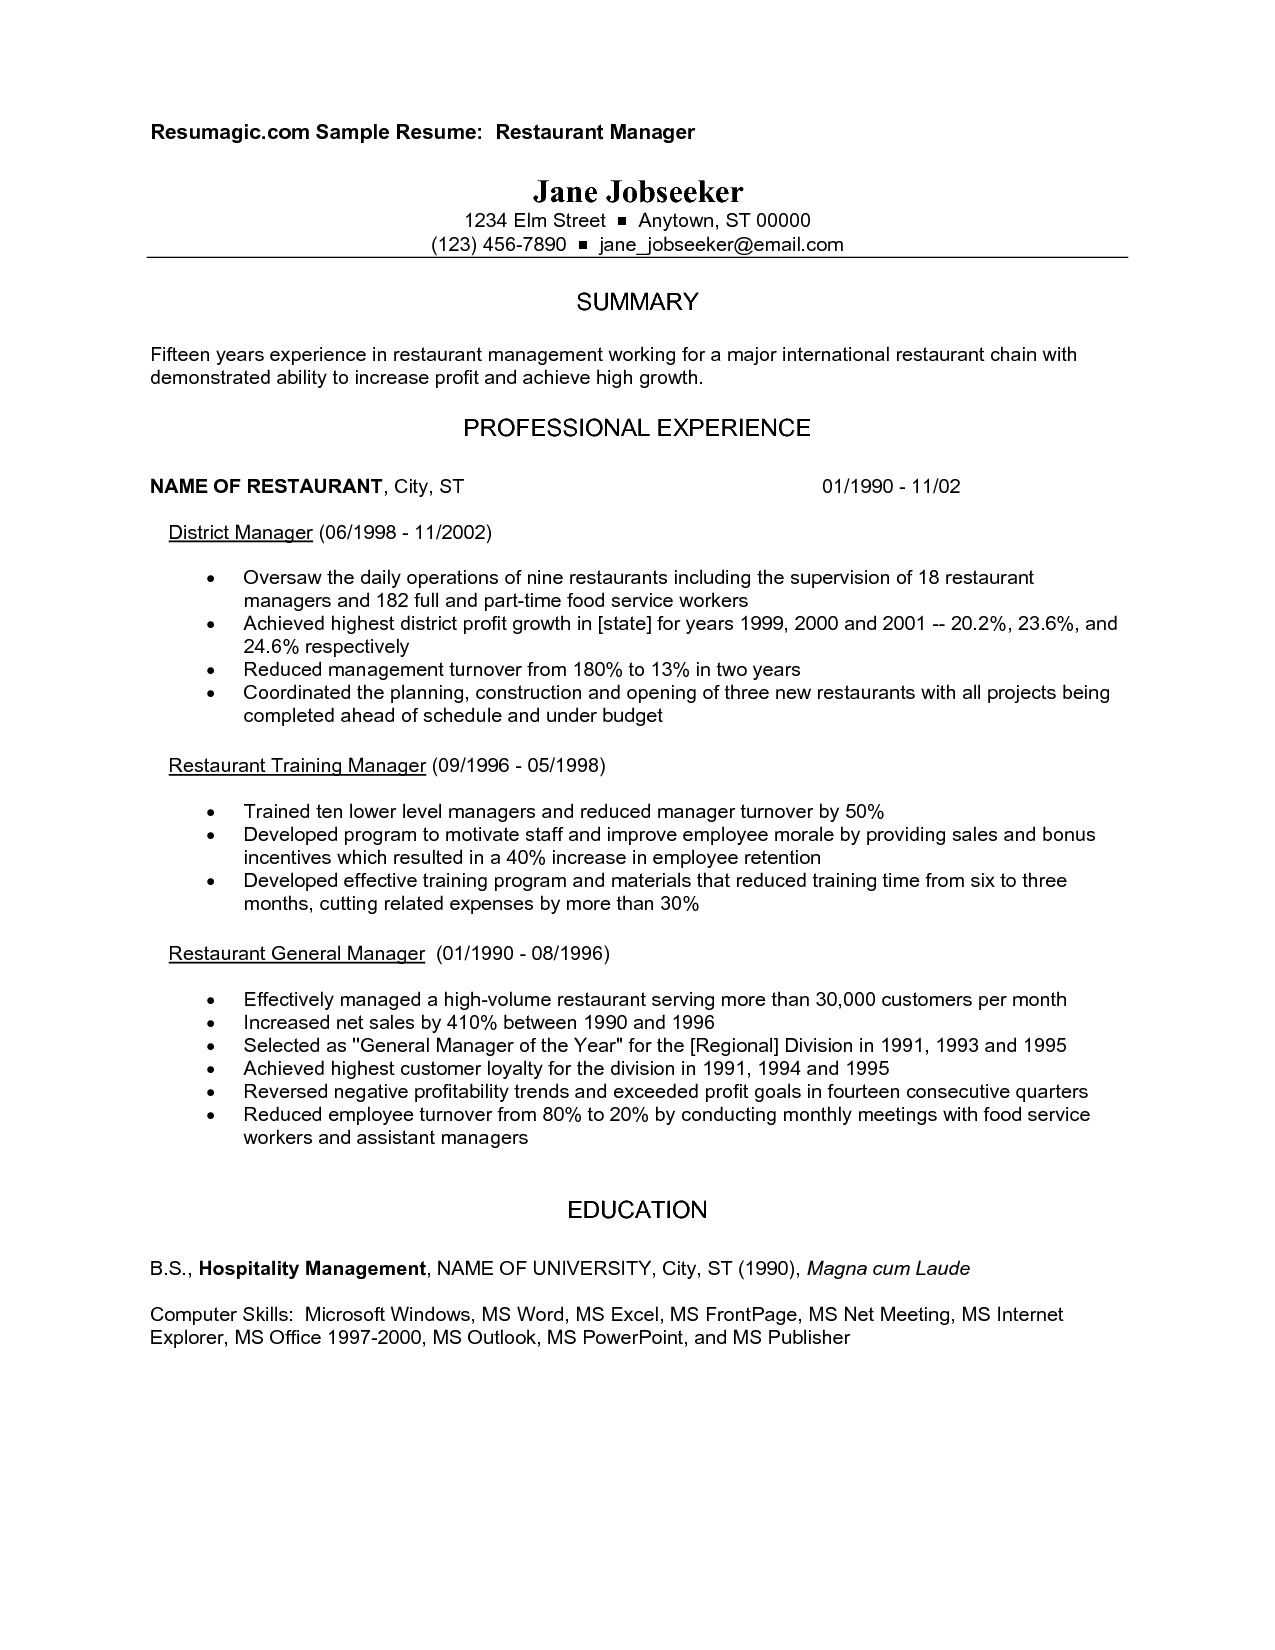 resume objective - Restaurant Resume Objectives